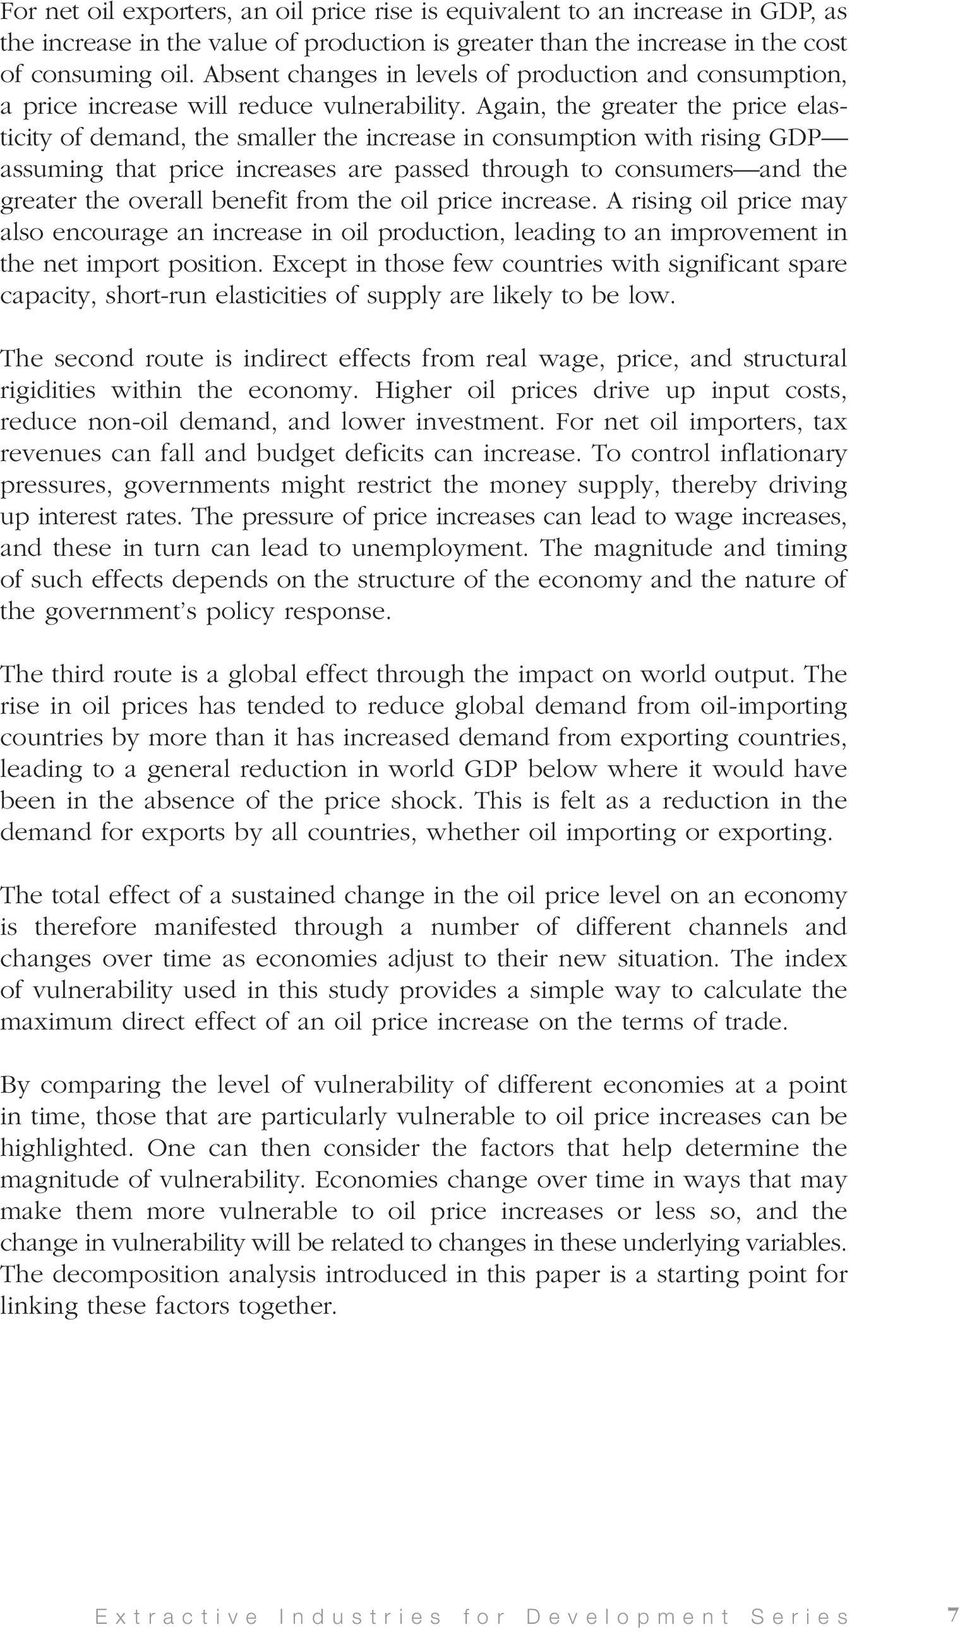 Again, the greater the price elasticity of demand, the smaller the increase in consumption with rising GDP assuming that price increases are passed through to consumers and the greater the overall